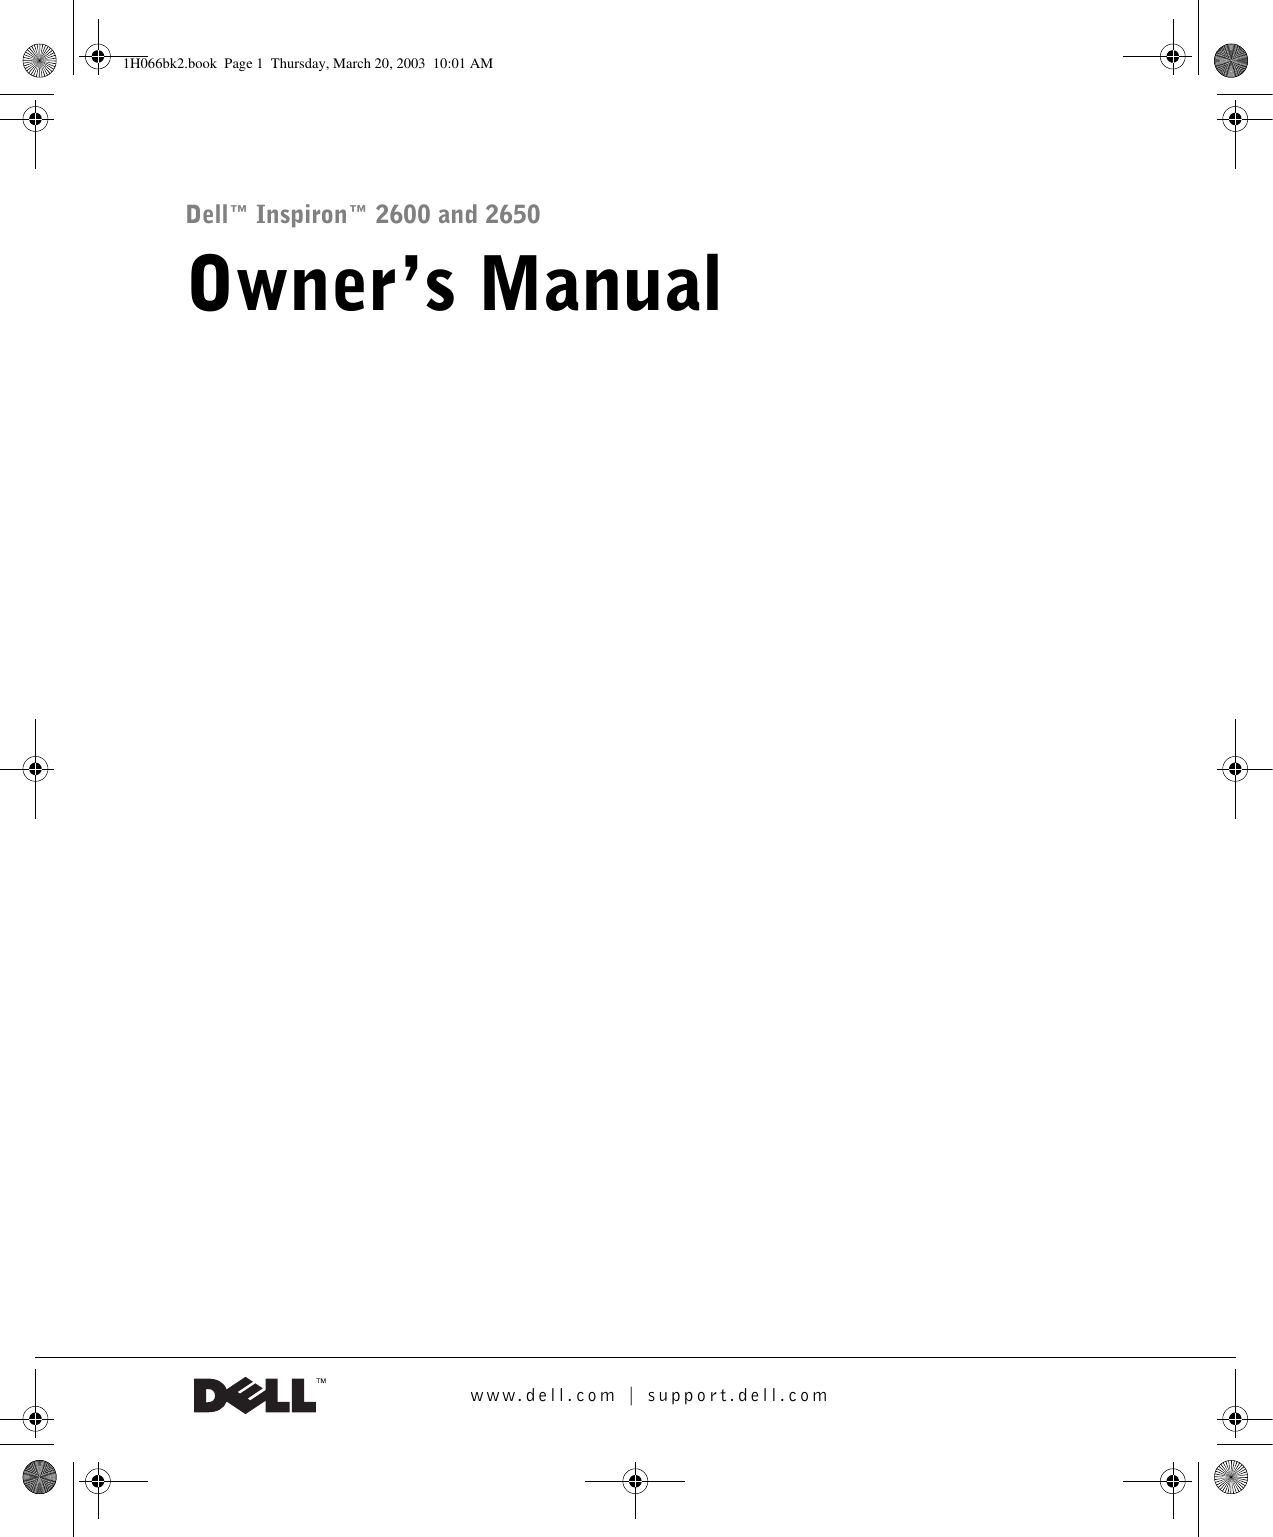 Dell Inspiron 2650 Owners Manual Owner's